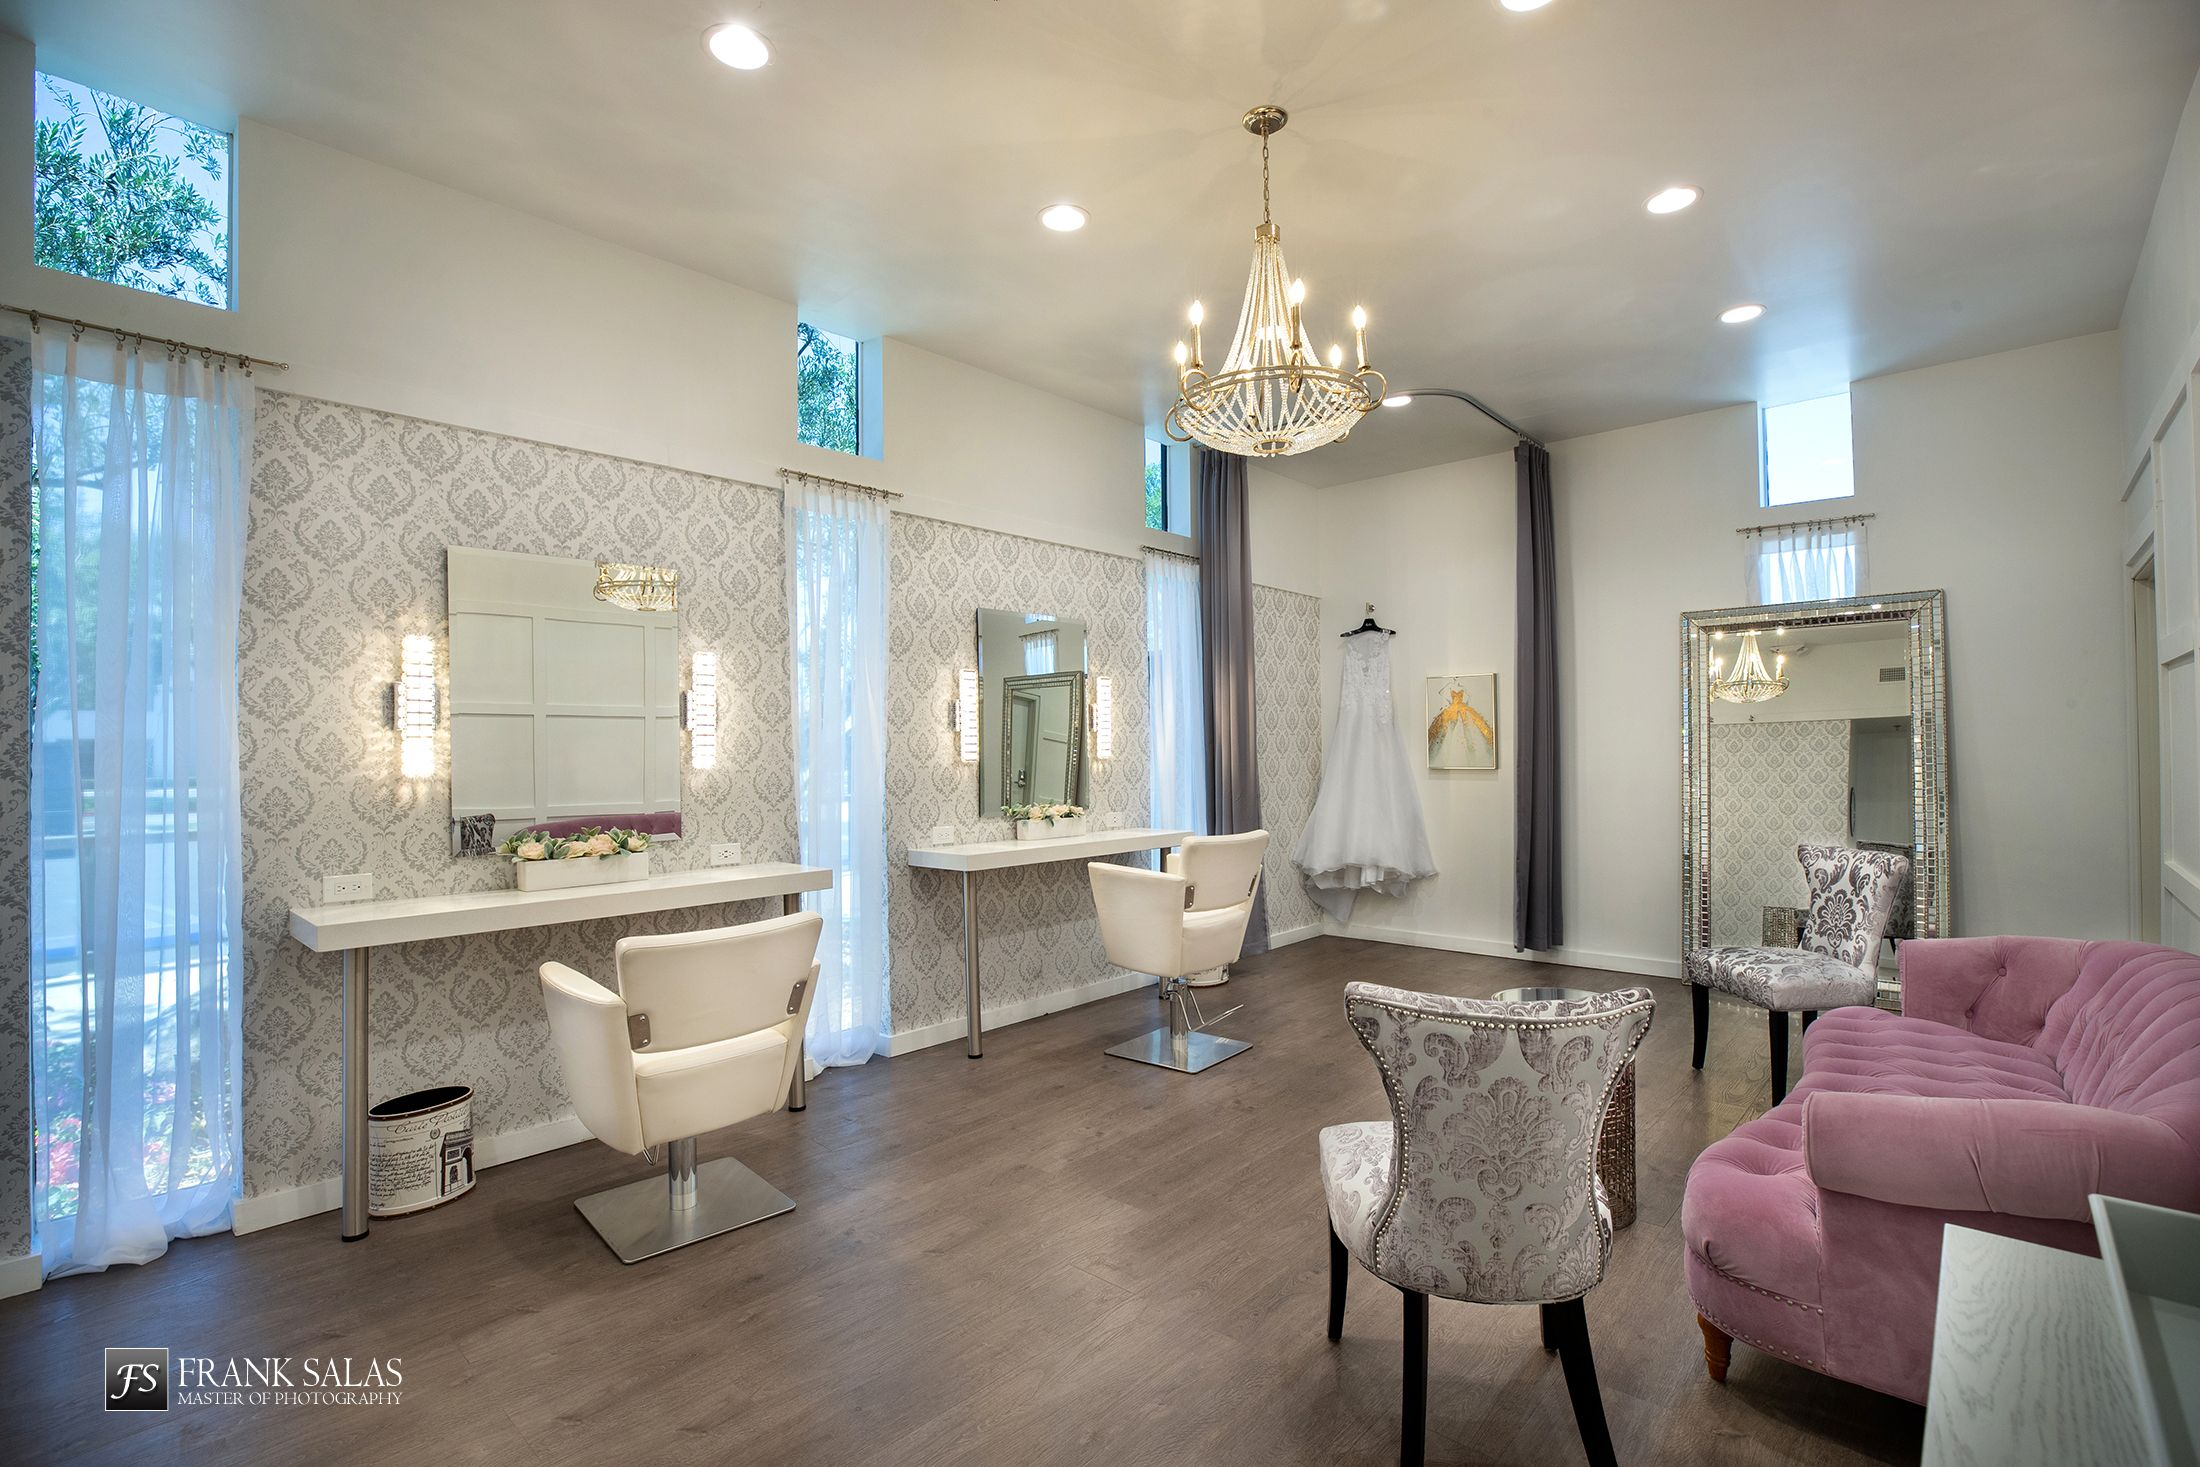 Every Bride Deserves An Amazing Bridal Suite Who Wants To